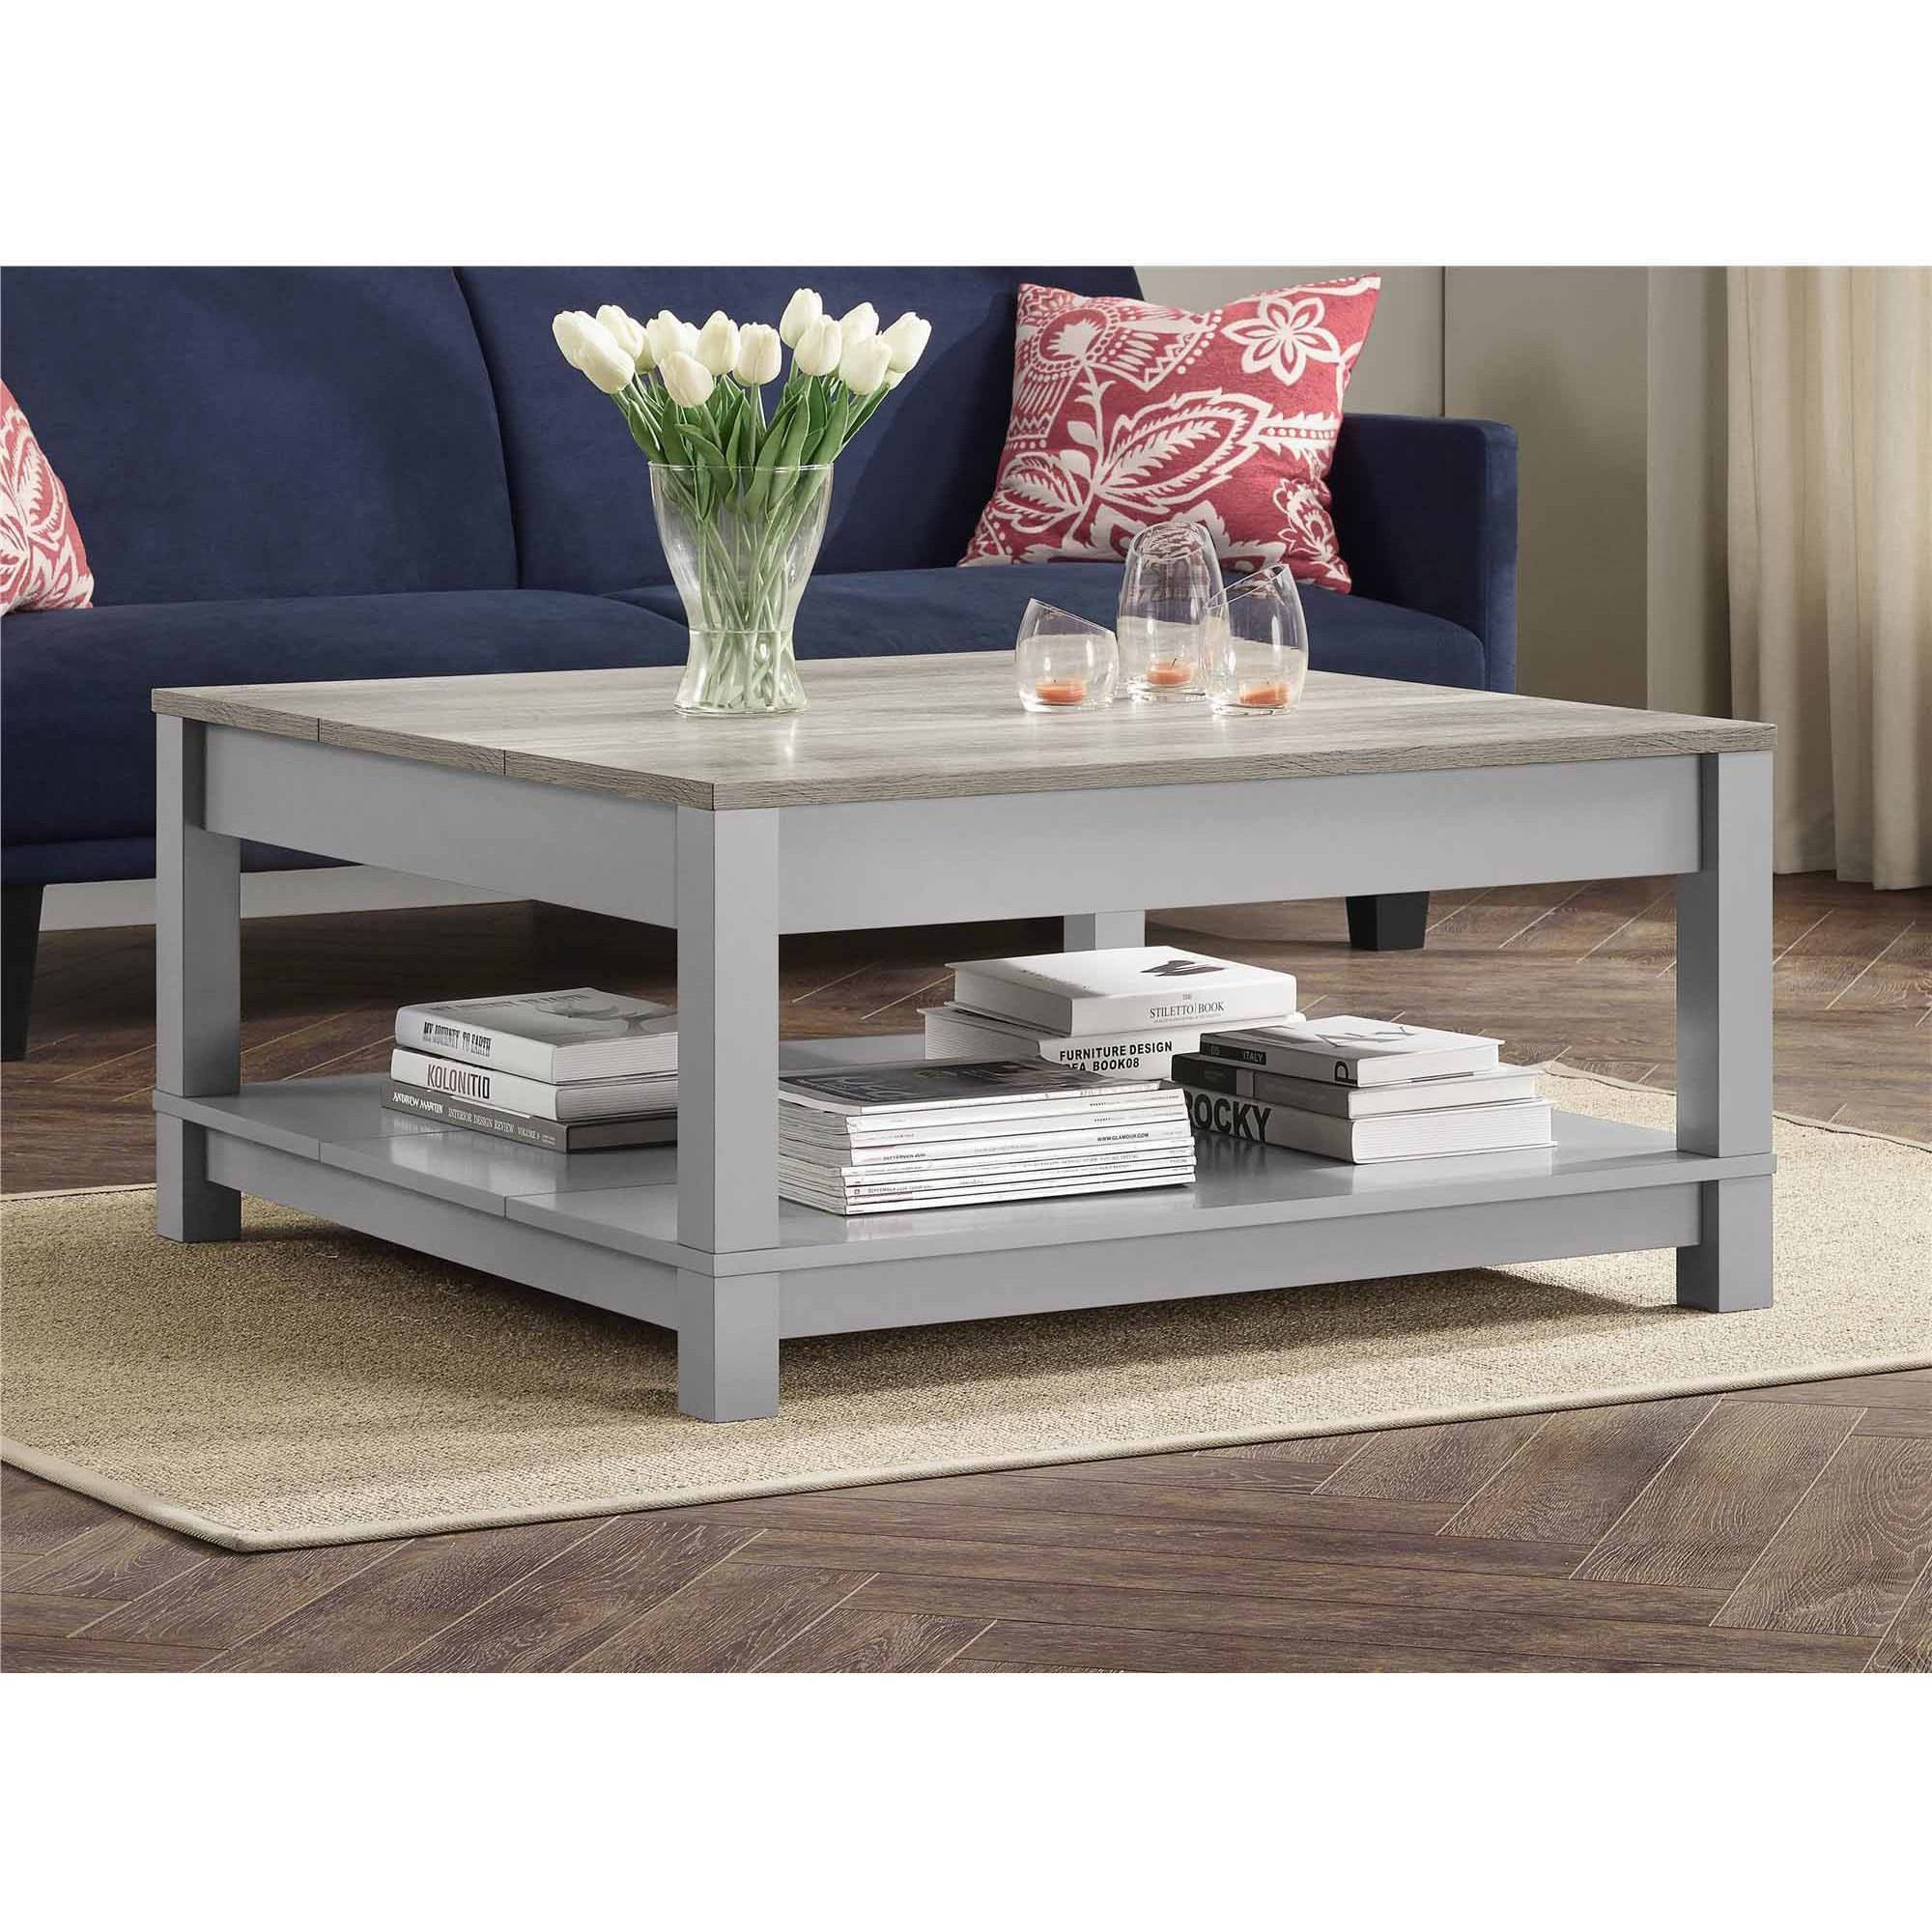 Better Homes And Gardens Langley Bay Coffee Table, Gray/sonoma Oak within Gray Wood Coffee Tables (Image 9 of 30)